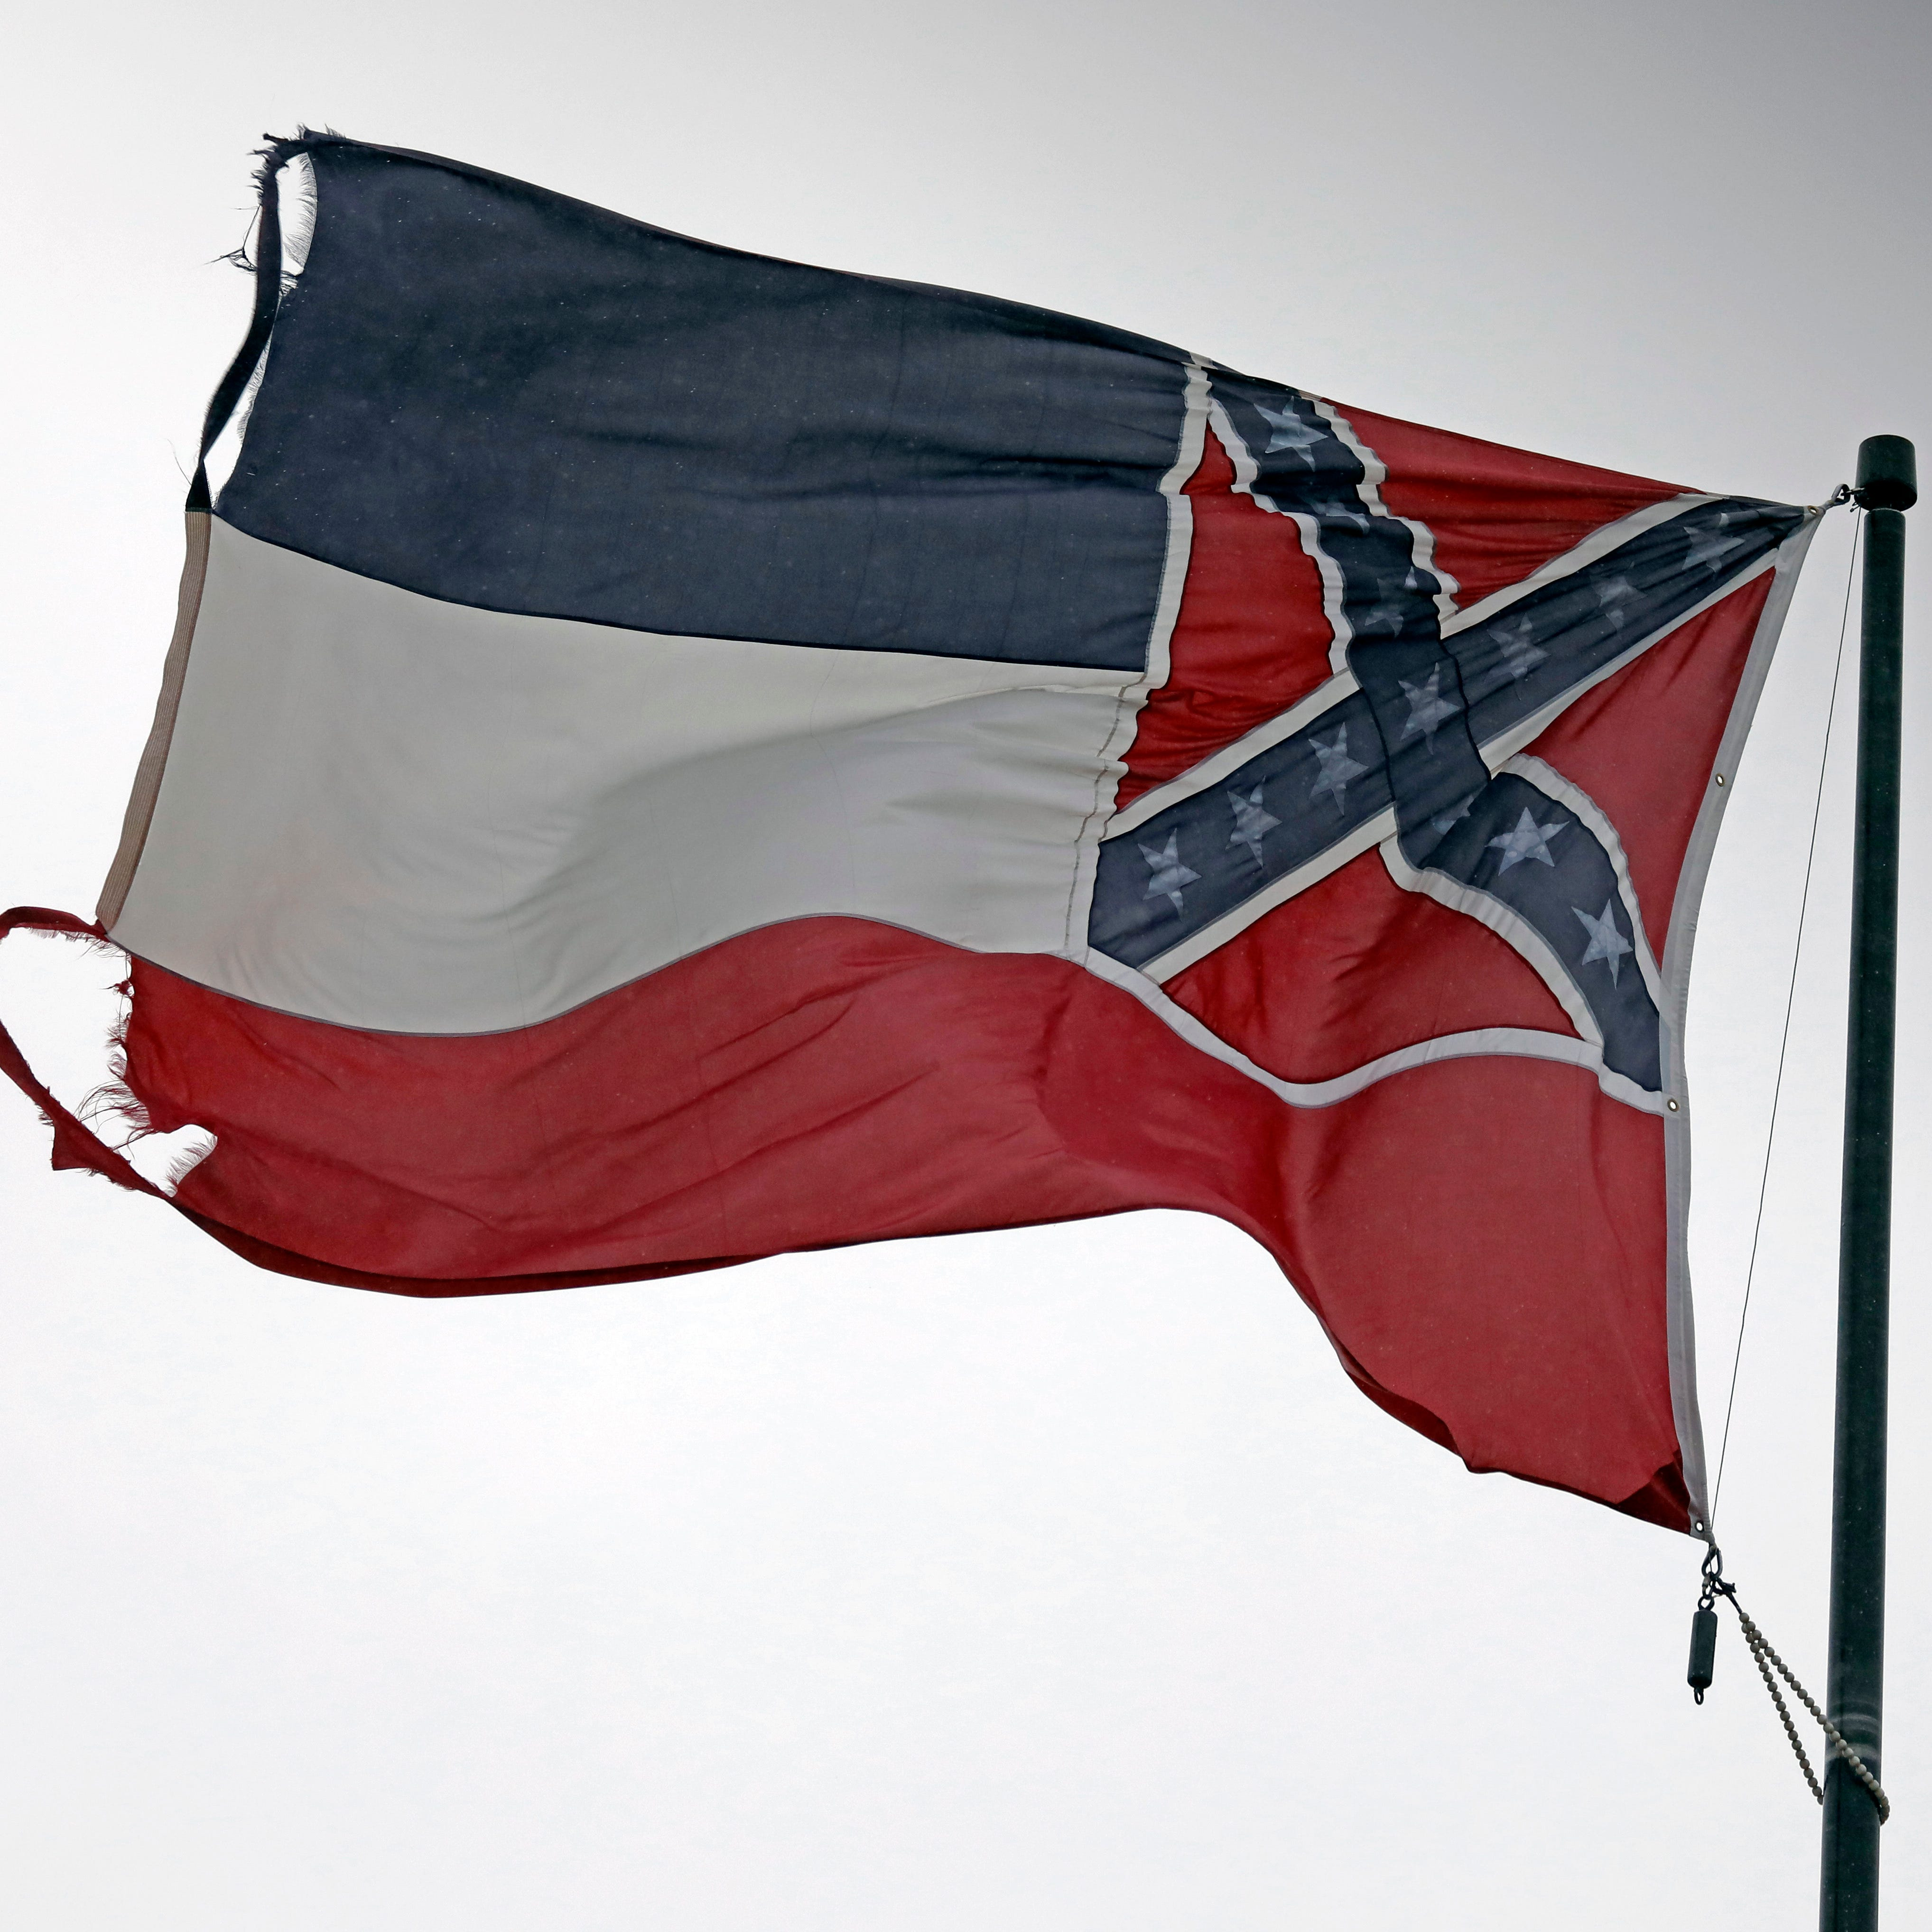 Mississippi flag talk could open honest dialogue about Confederate history: Column